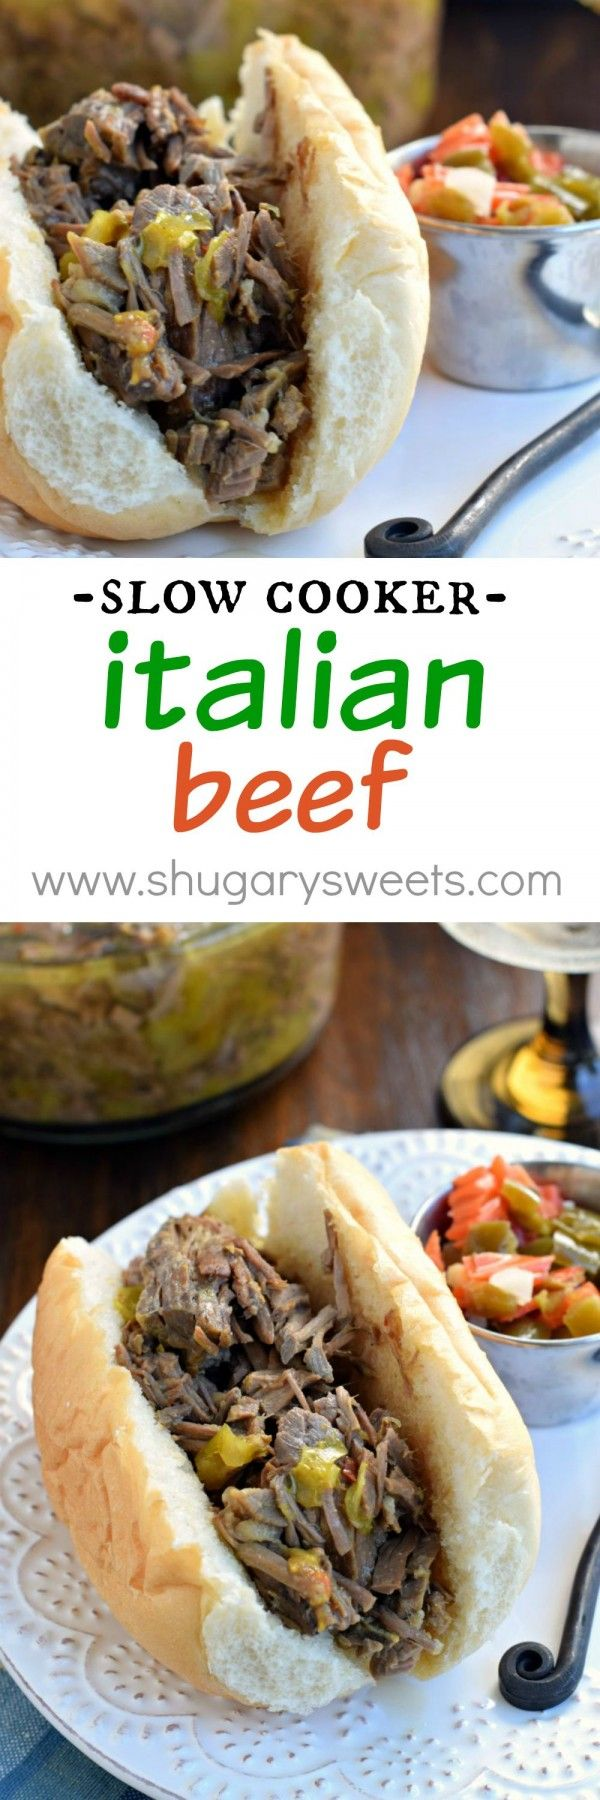 100+ Italian beef recipes on Pinterest | Italian beef ...